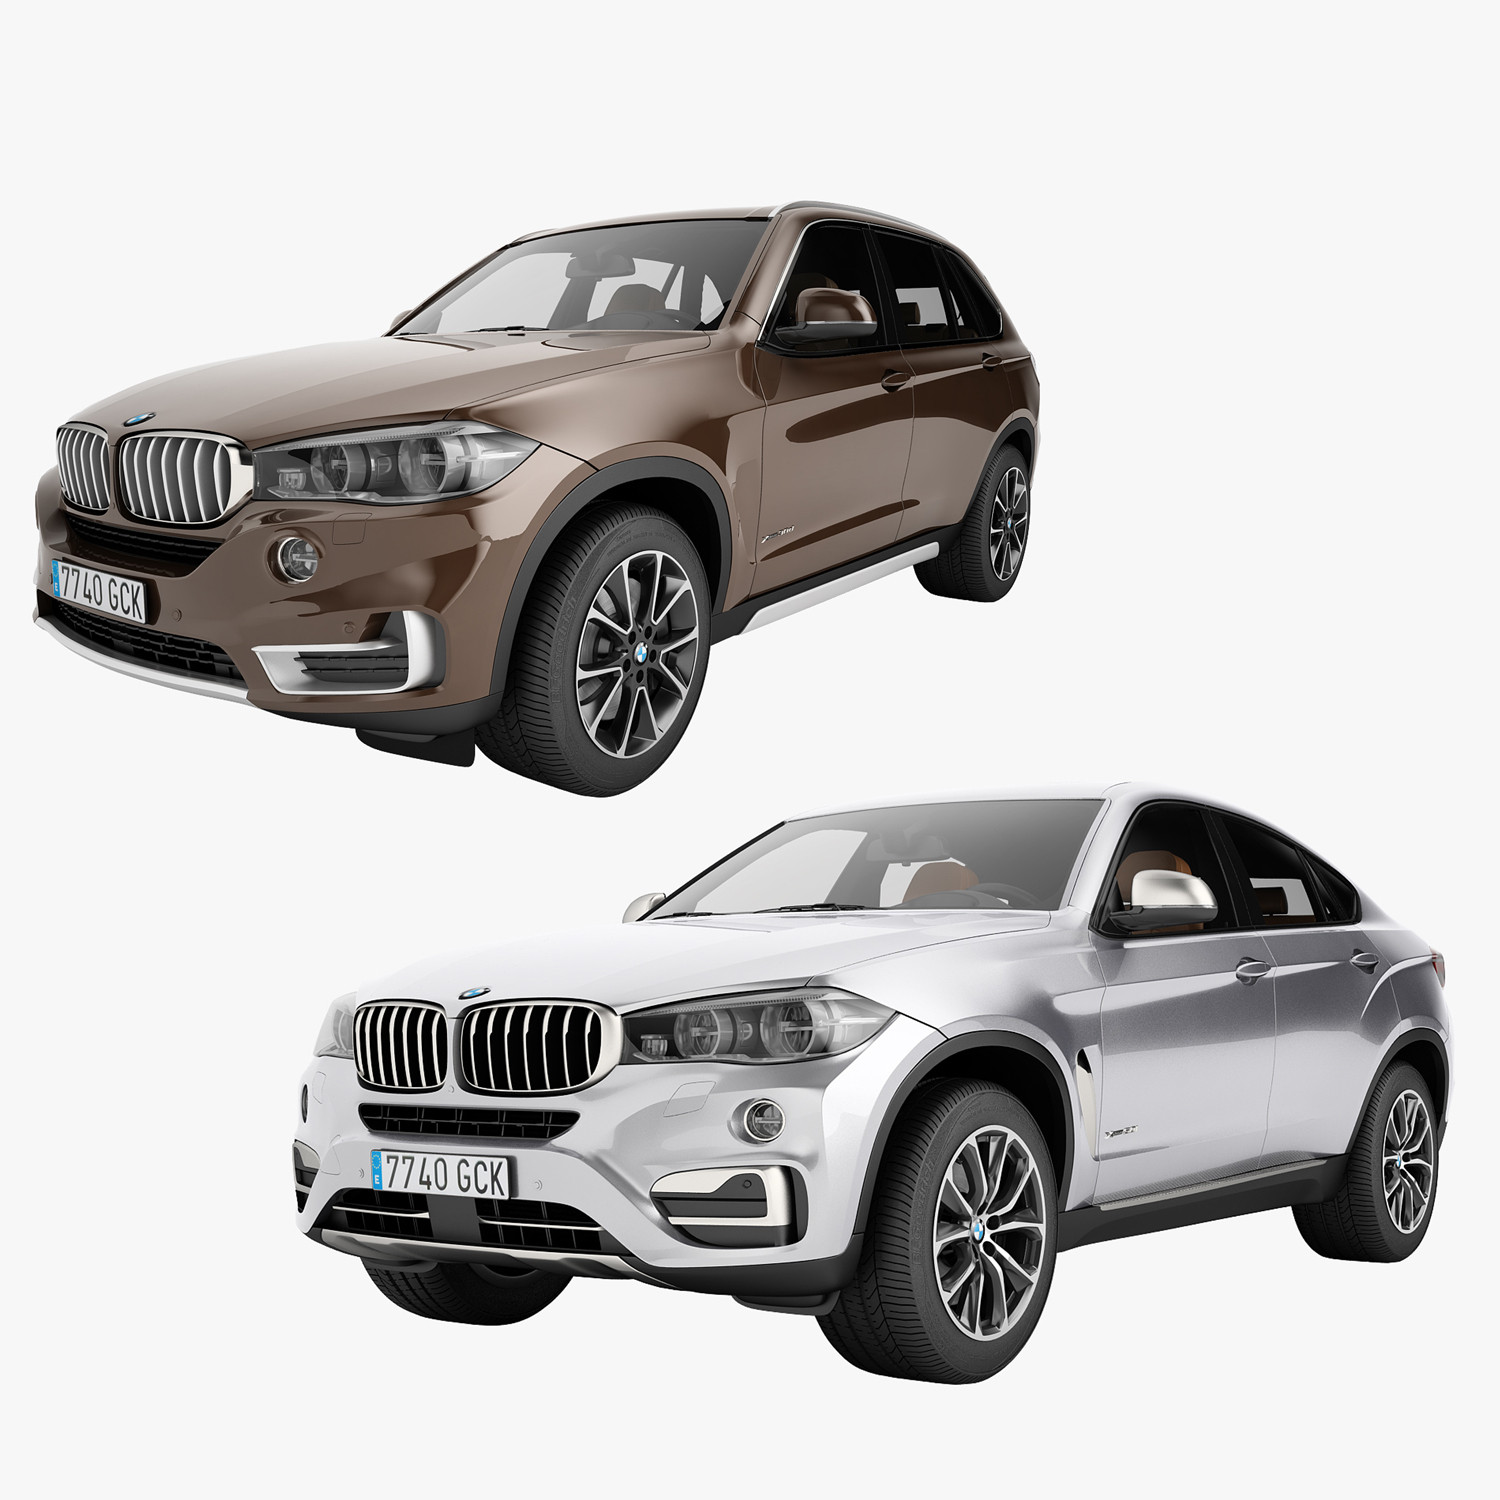 Bmw X6 Price In Germany: 3d Model Bmw X5 2015 X6